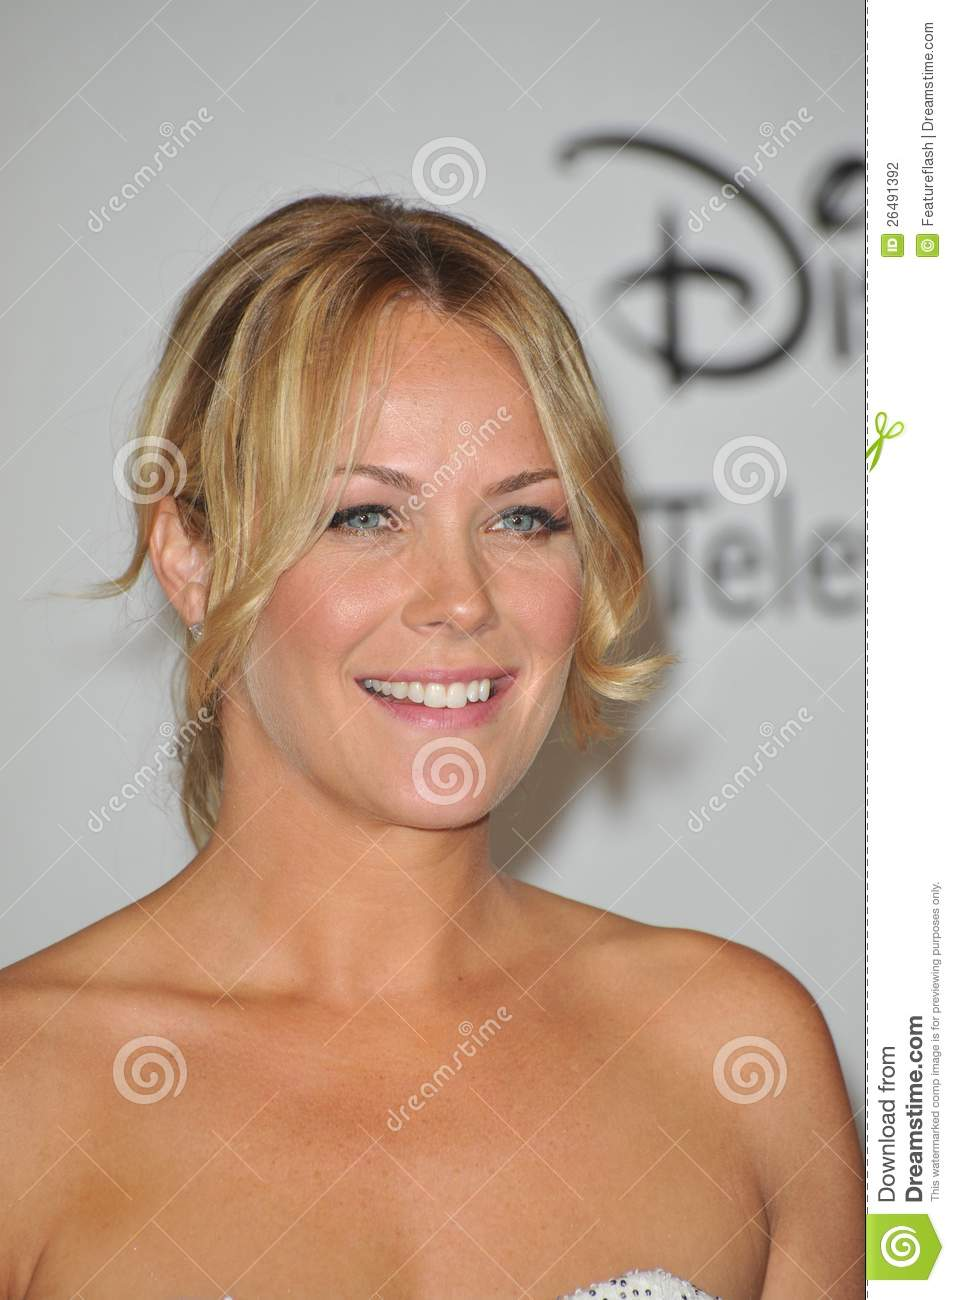 Andrea Anders Bikini andrea anders editorial photography. image of sunshine